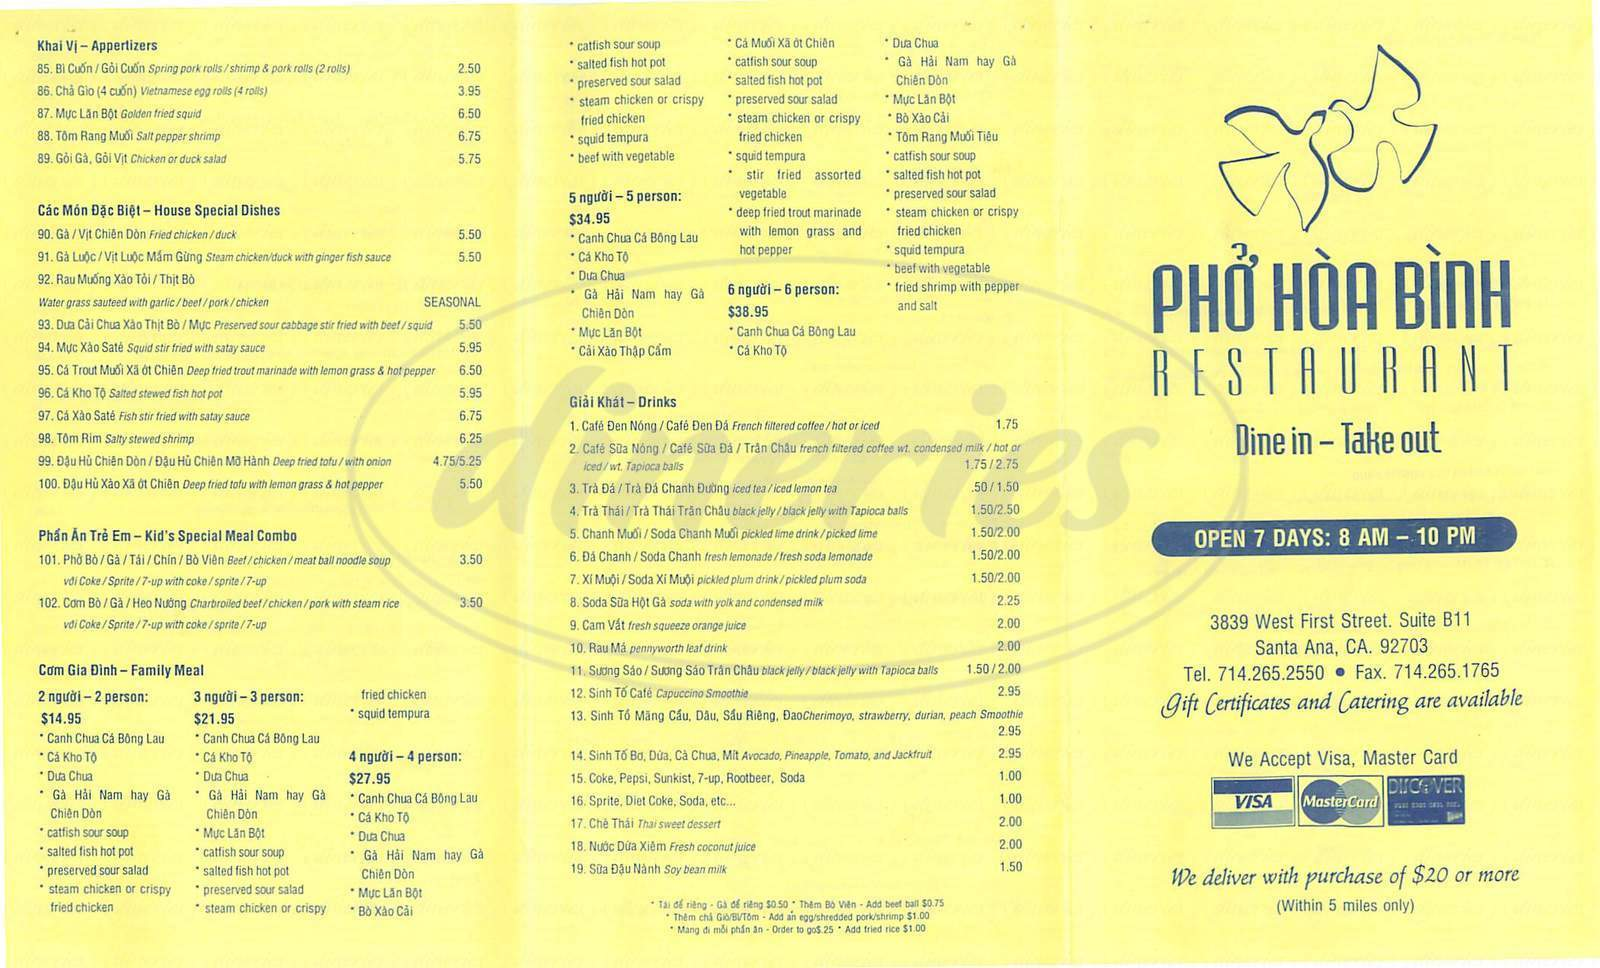 menu for Pho Hoa Binh